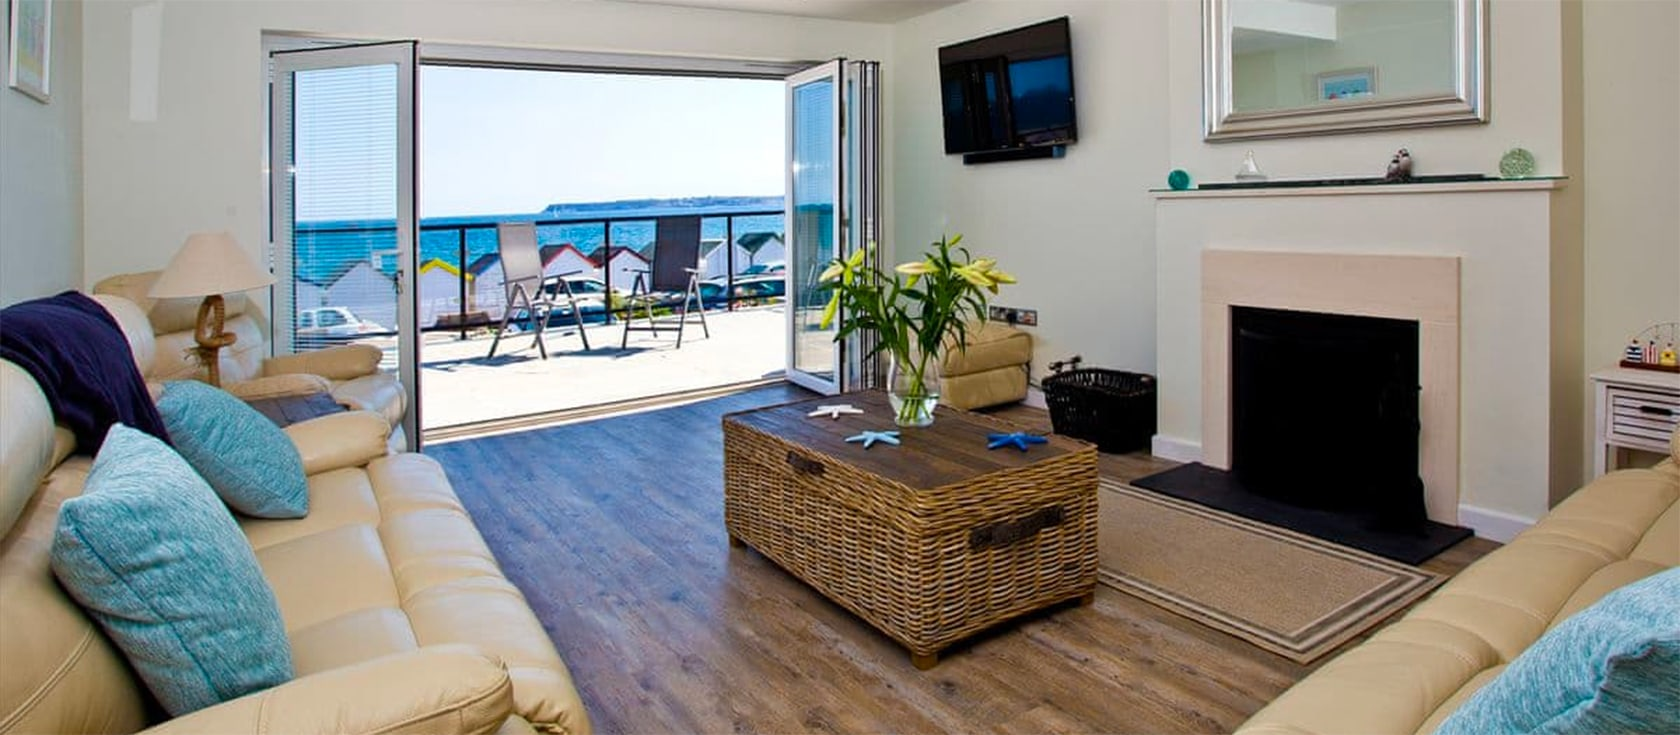 The Beach Retreat, Paignton